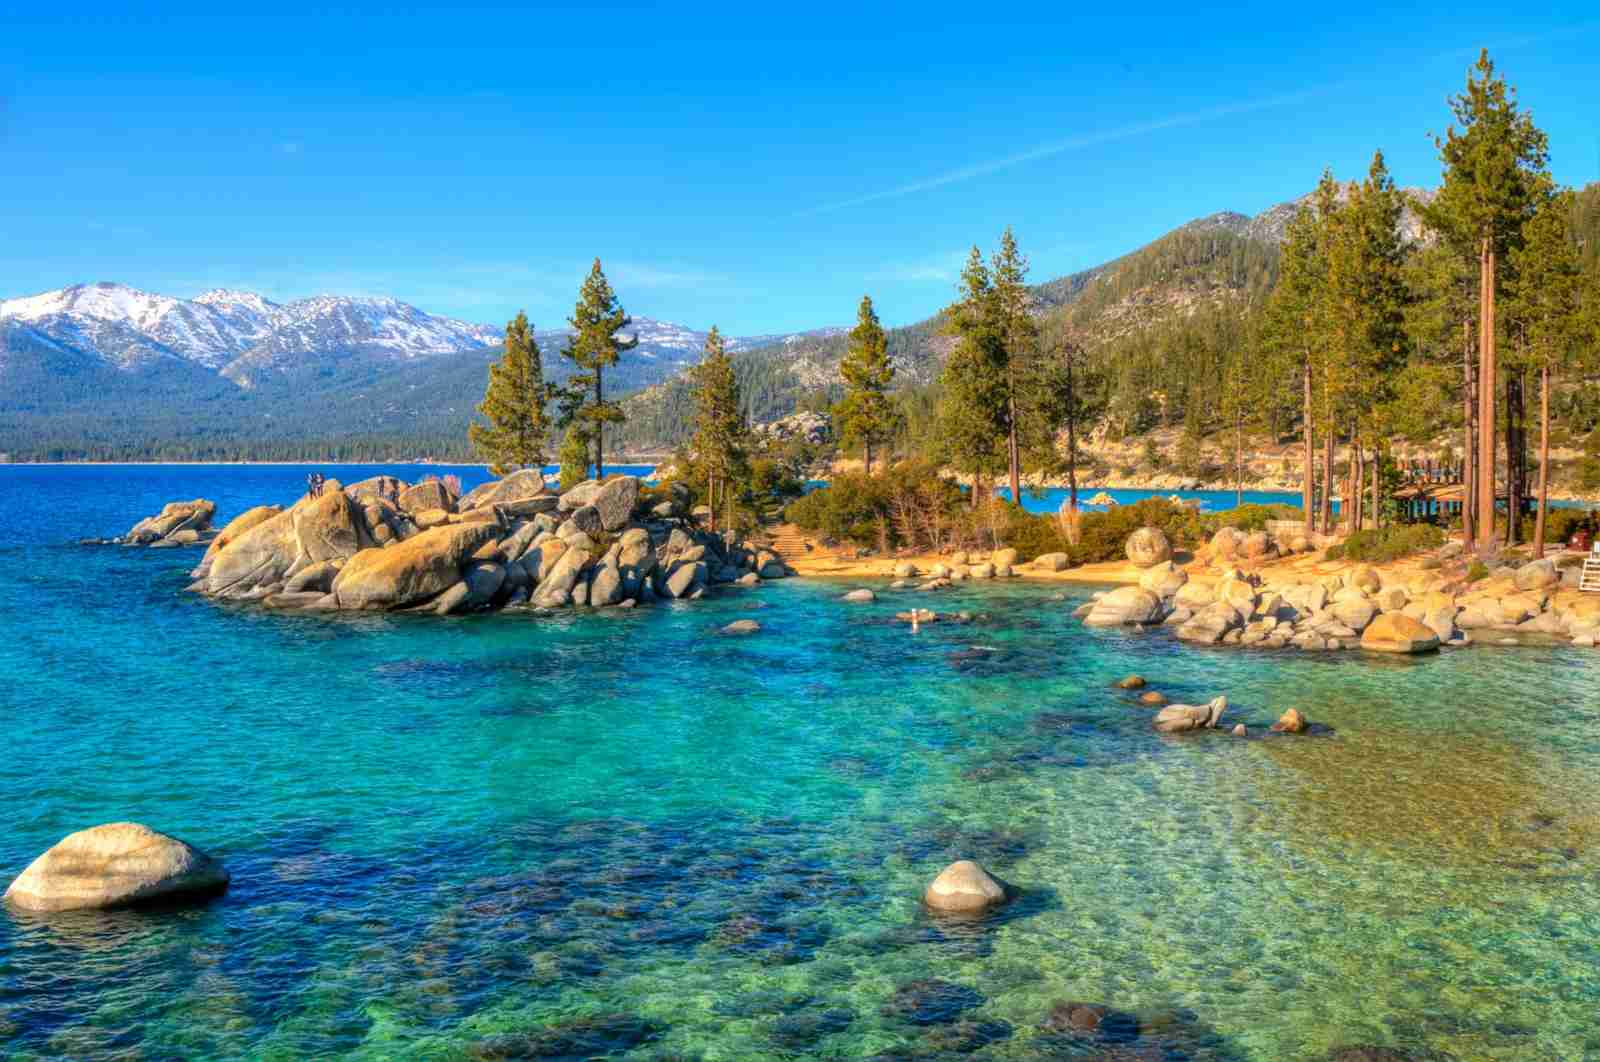 Sand Harbor State Park in Lake Tahoe (Photo by www.35mmNegative.com/Getty Images)